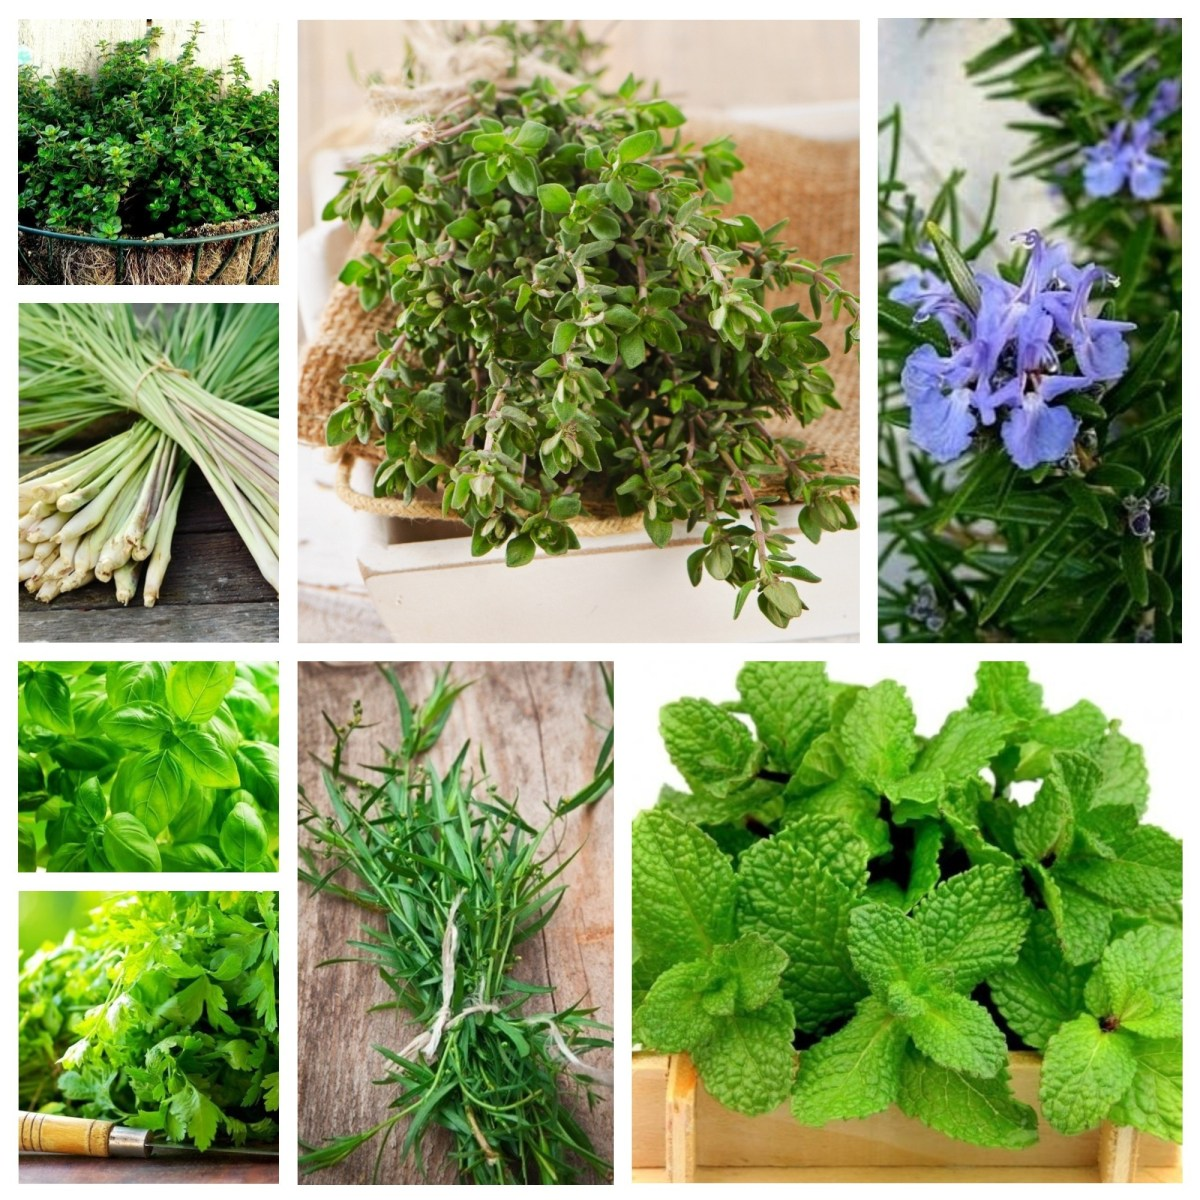 How are Medicinal Herbs planted?